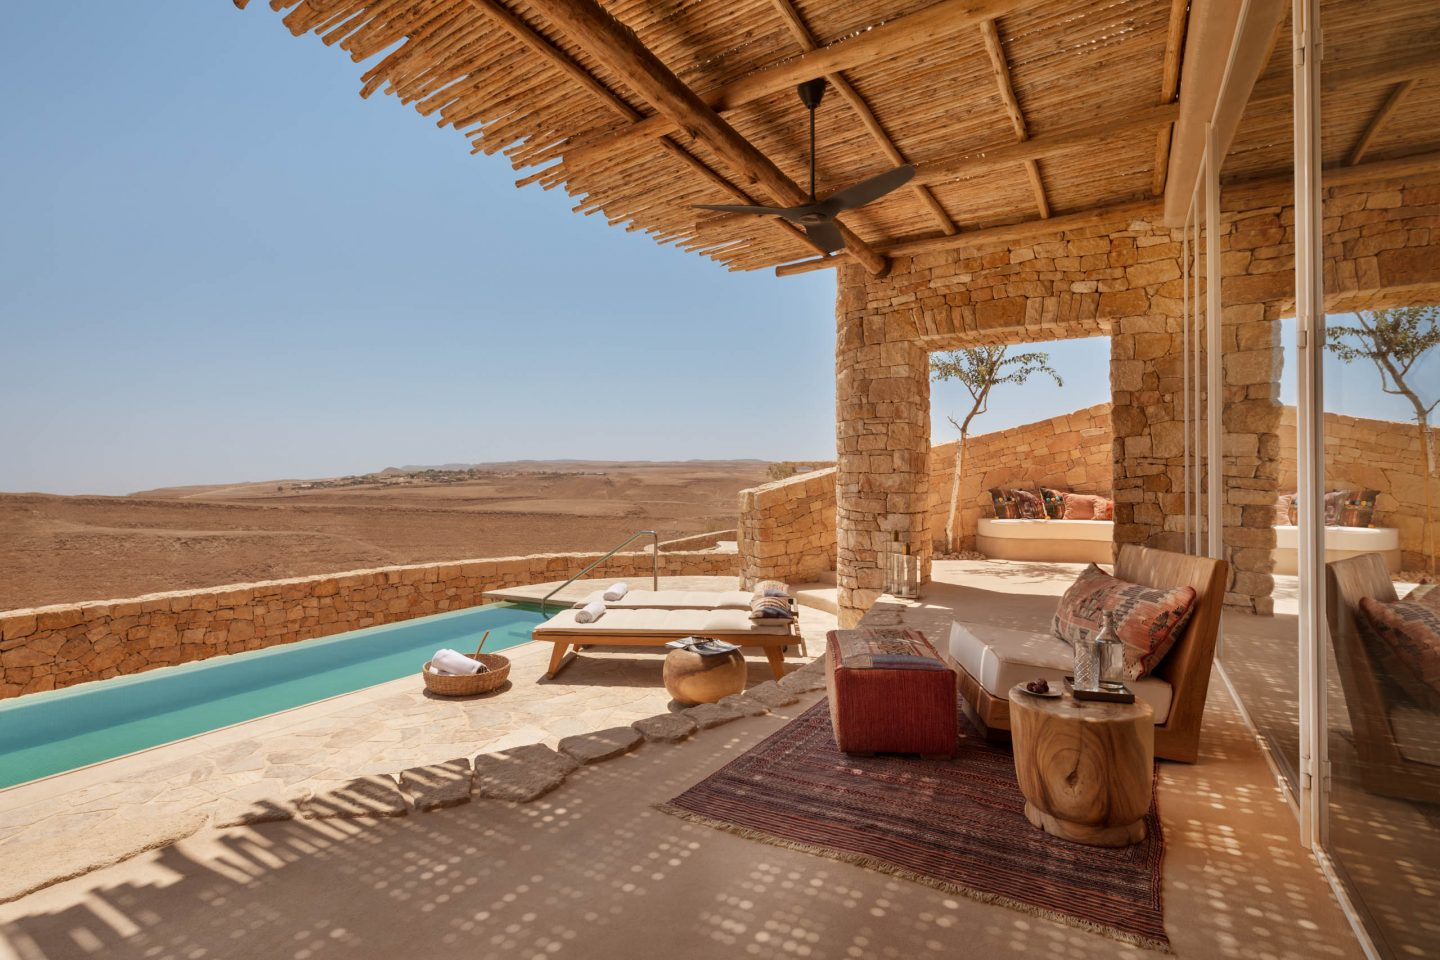 Six Senses Shaharut in Israel